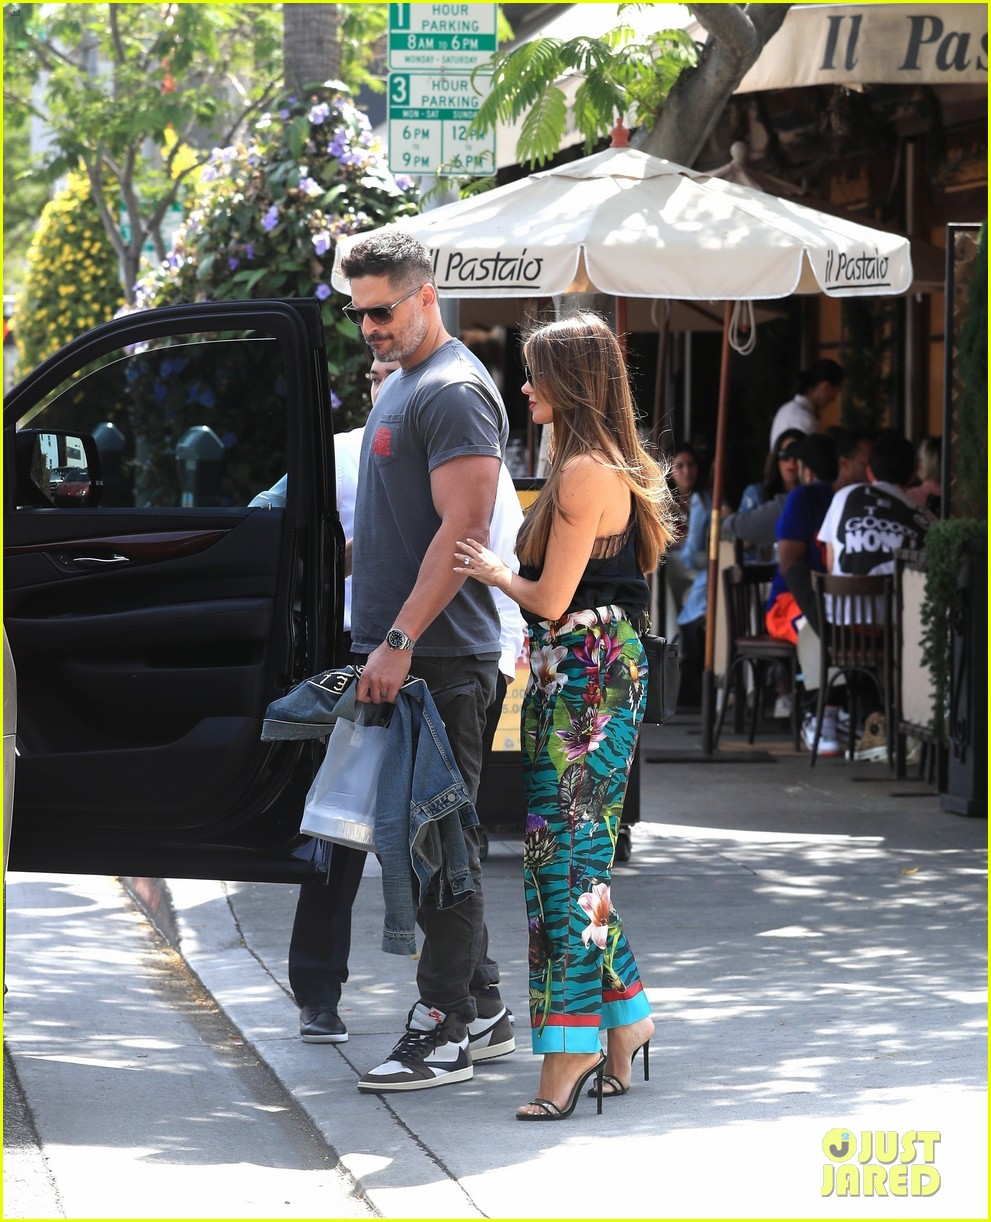 Sofia Vergara & Joe Manganiello Share Cute Moment After A